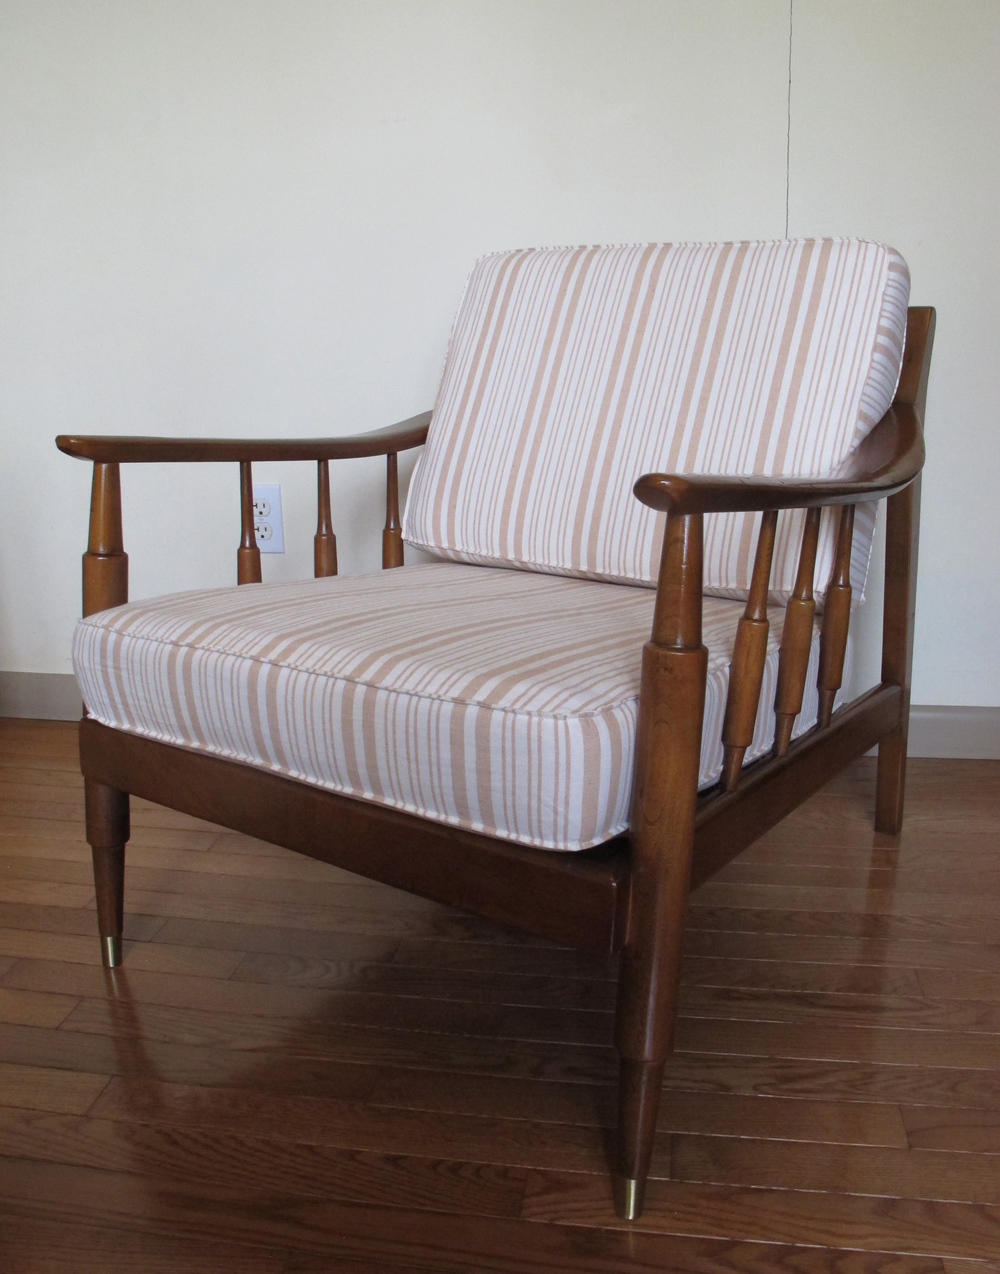 MID CENTURY MODERN SLAT BACK LOUNGE CHAIR